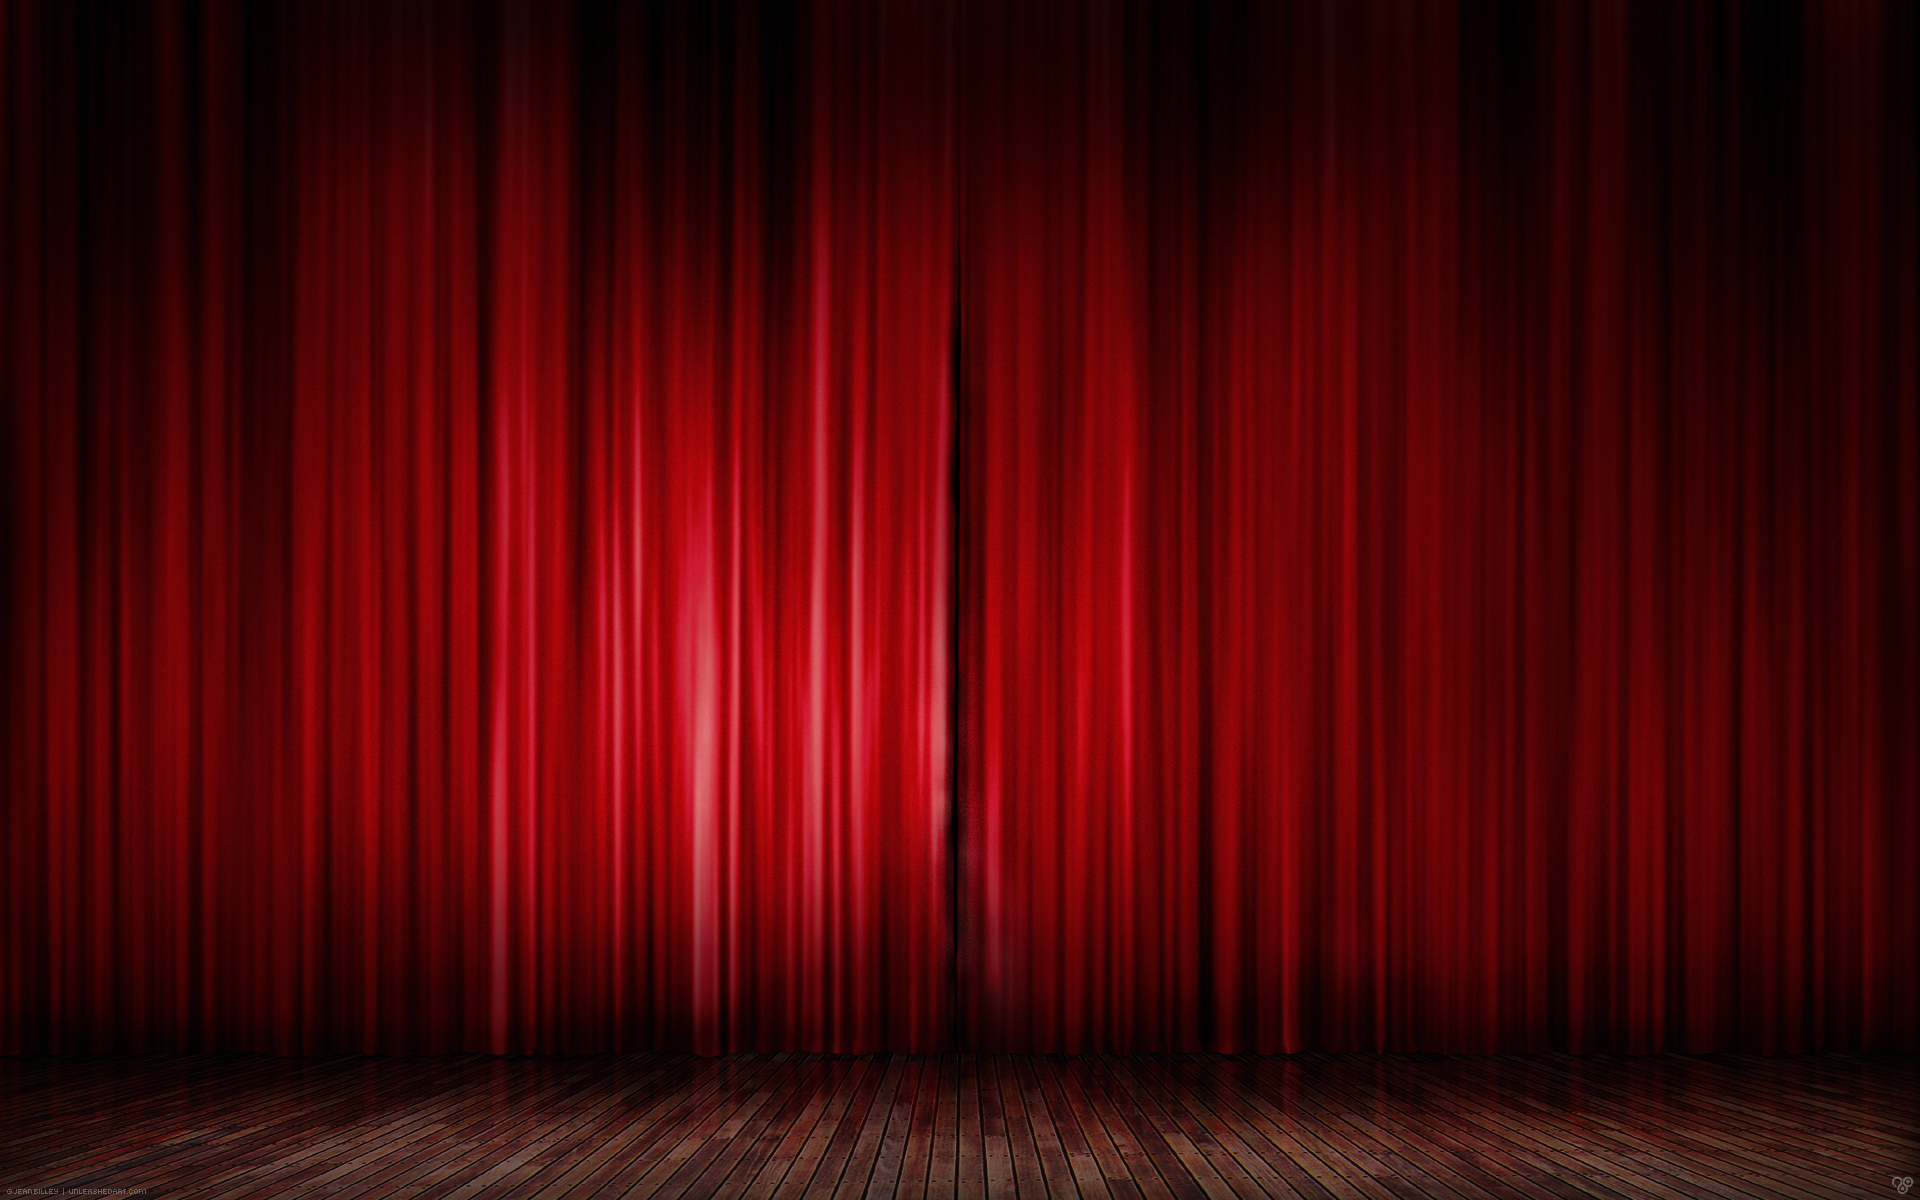 2 curtain hd wallpapers backgrounds wallpaper abyss for Photo fond ecran hd